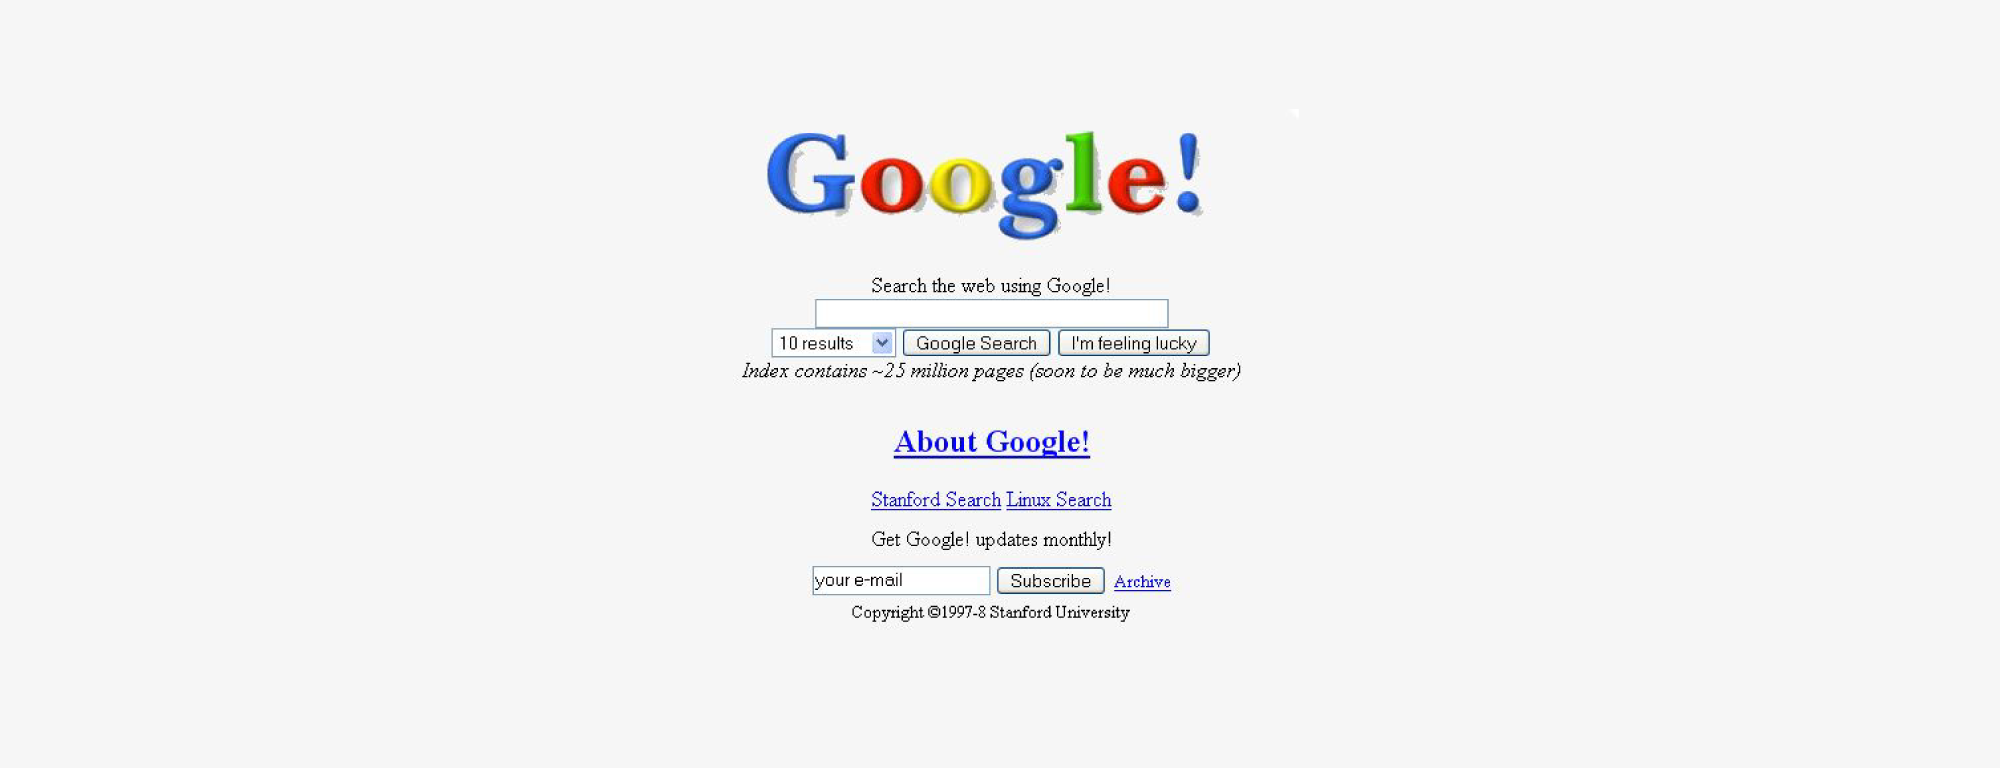 first version of the Google search